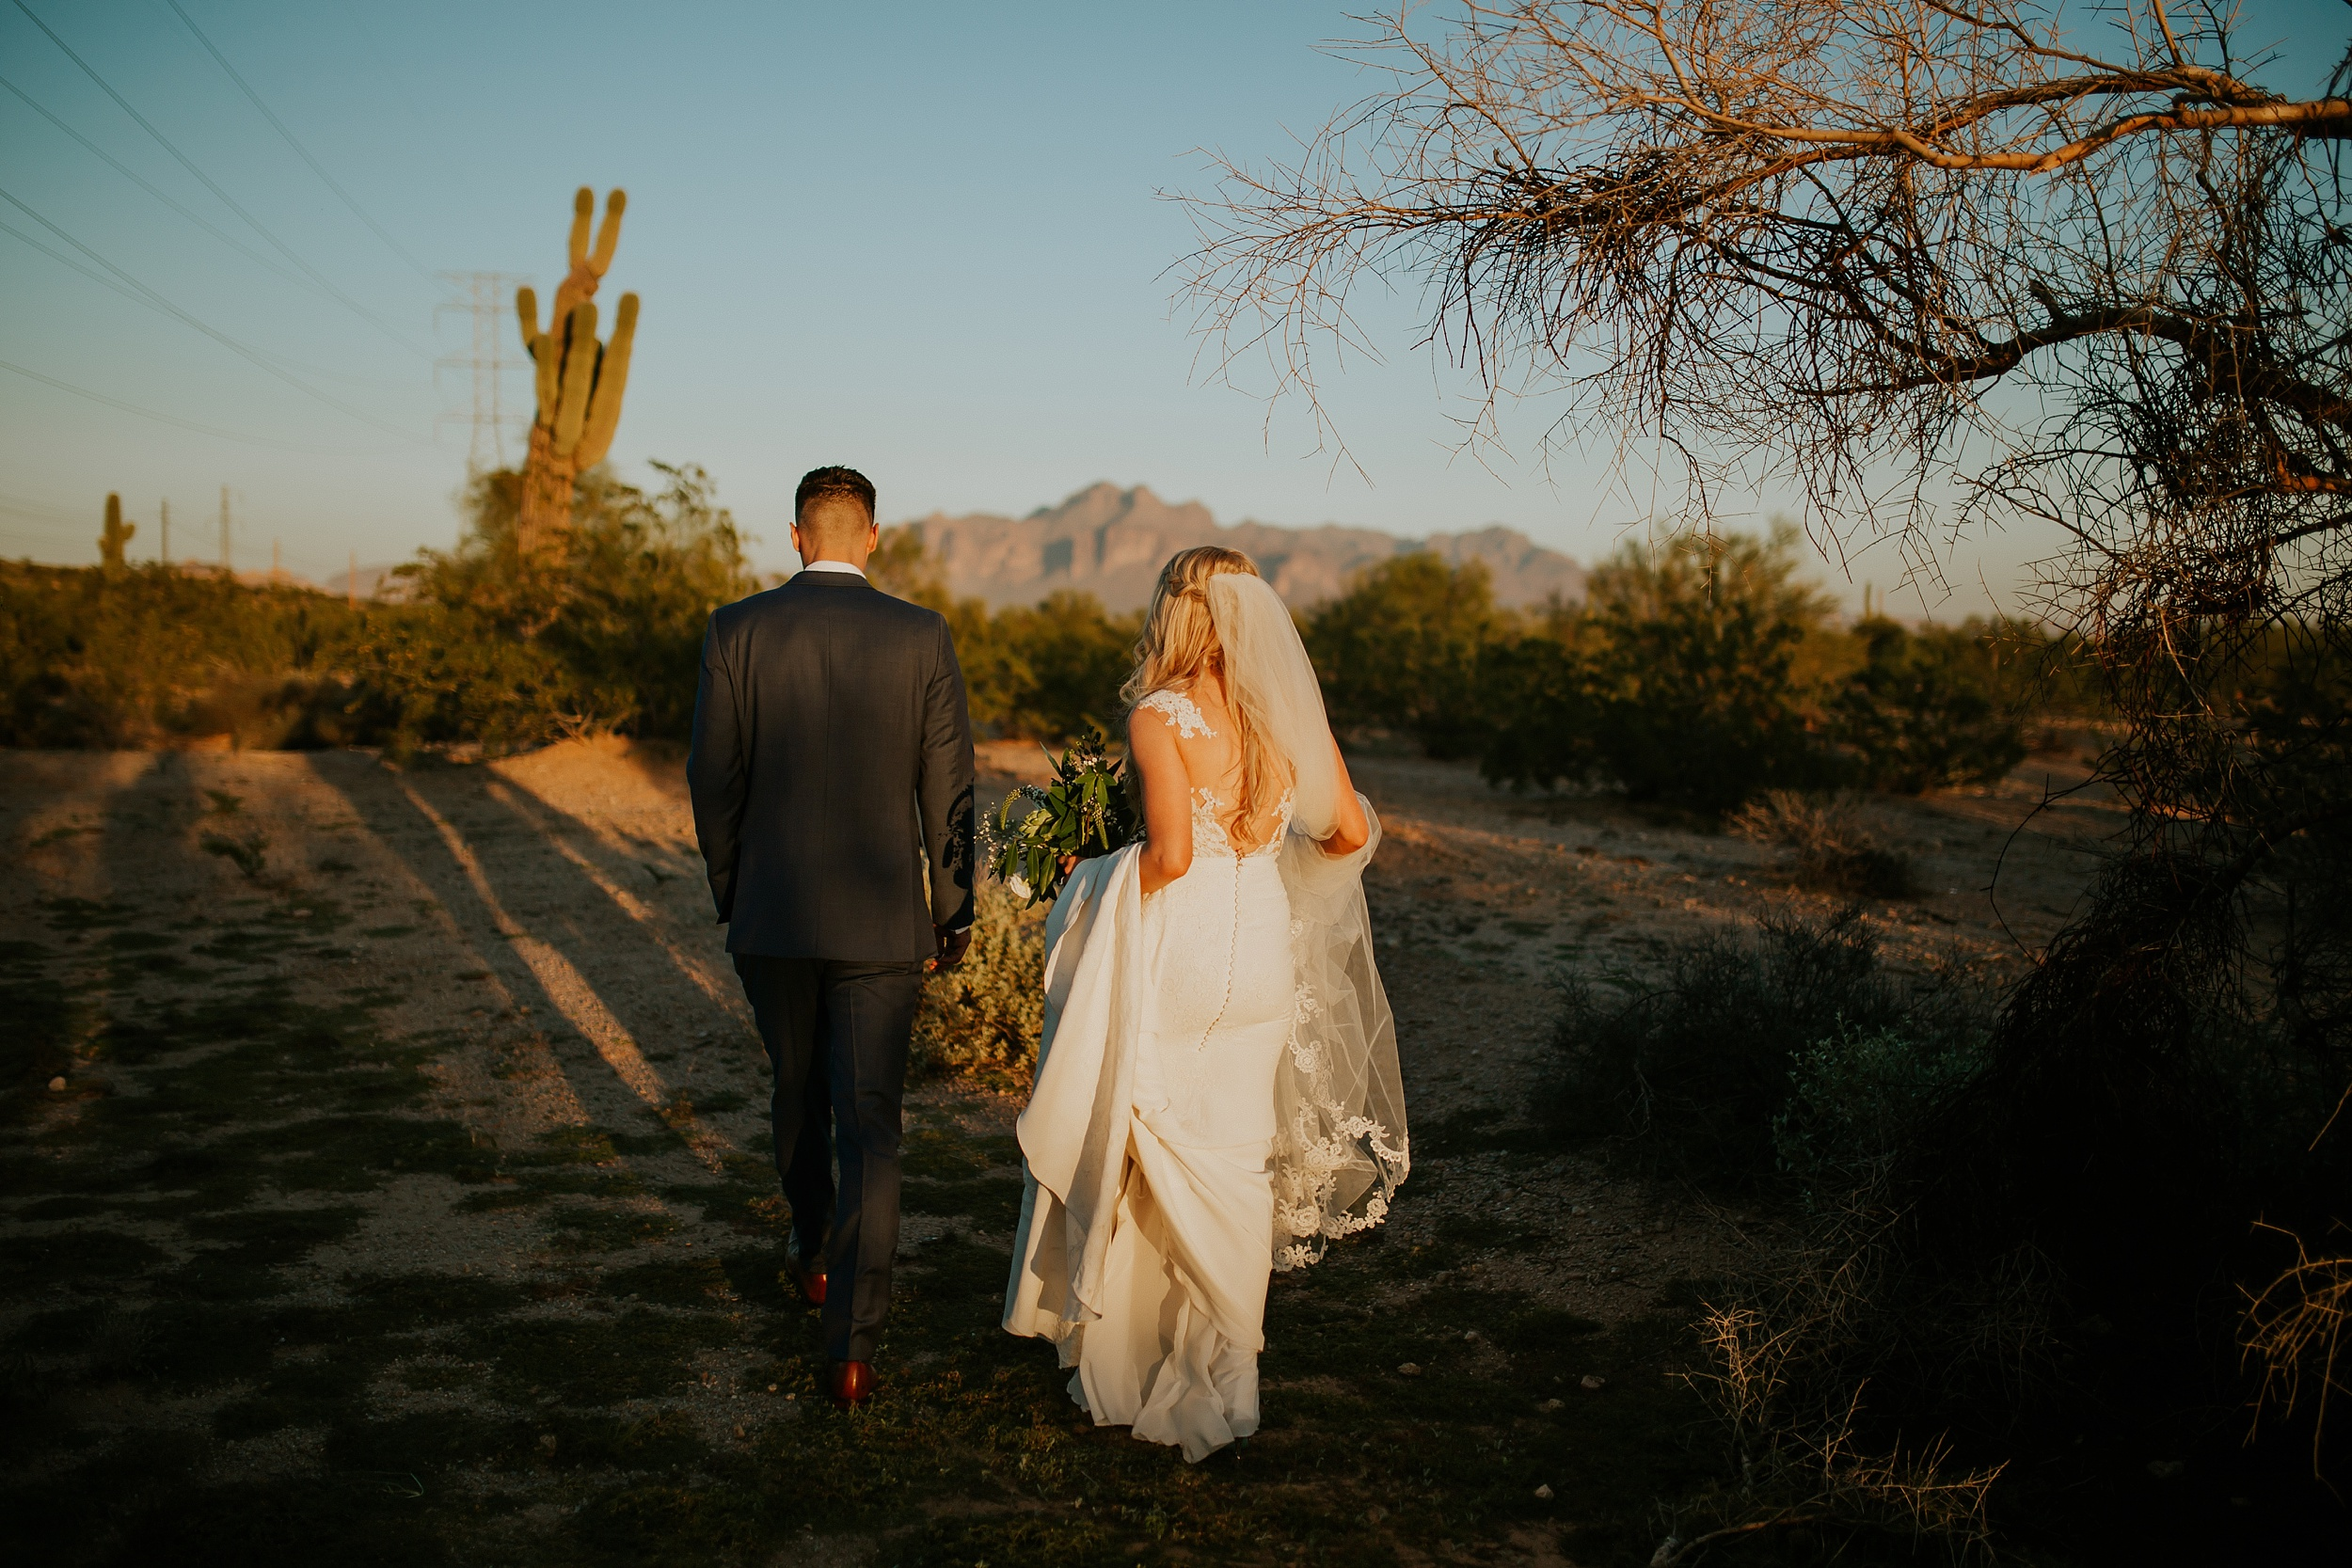 Meg+Bubba_Wedding_Bride+Groom_Portraits_Arizona-157.jpg